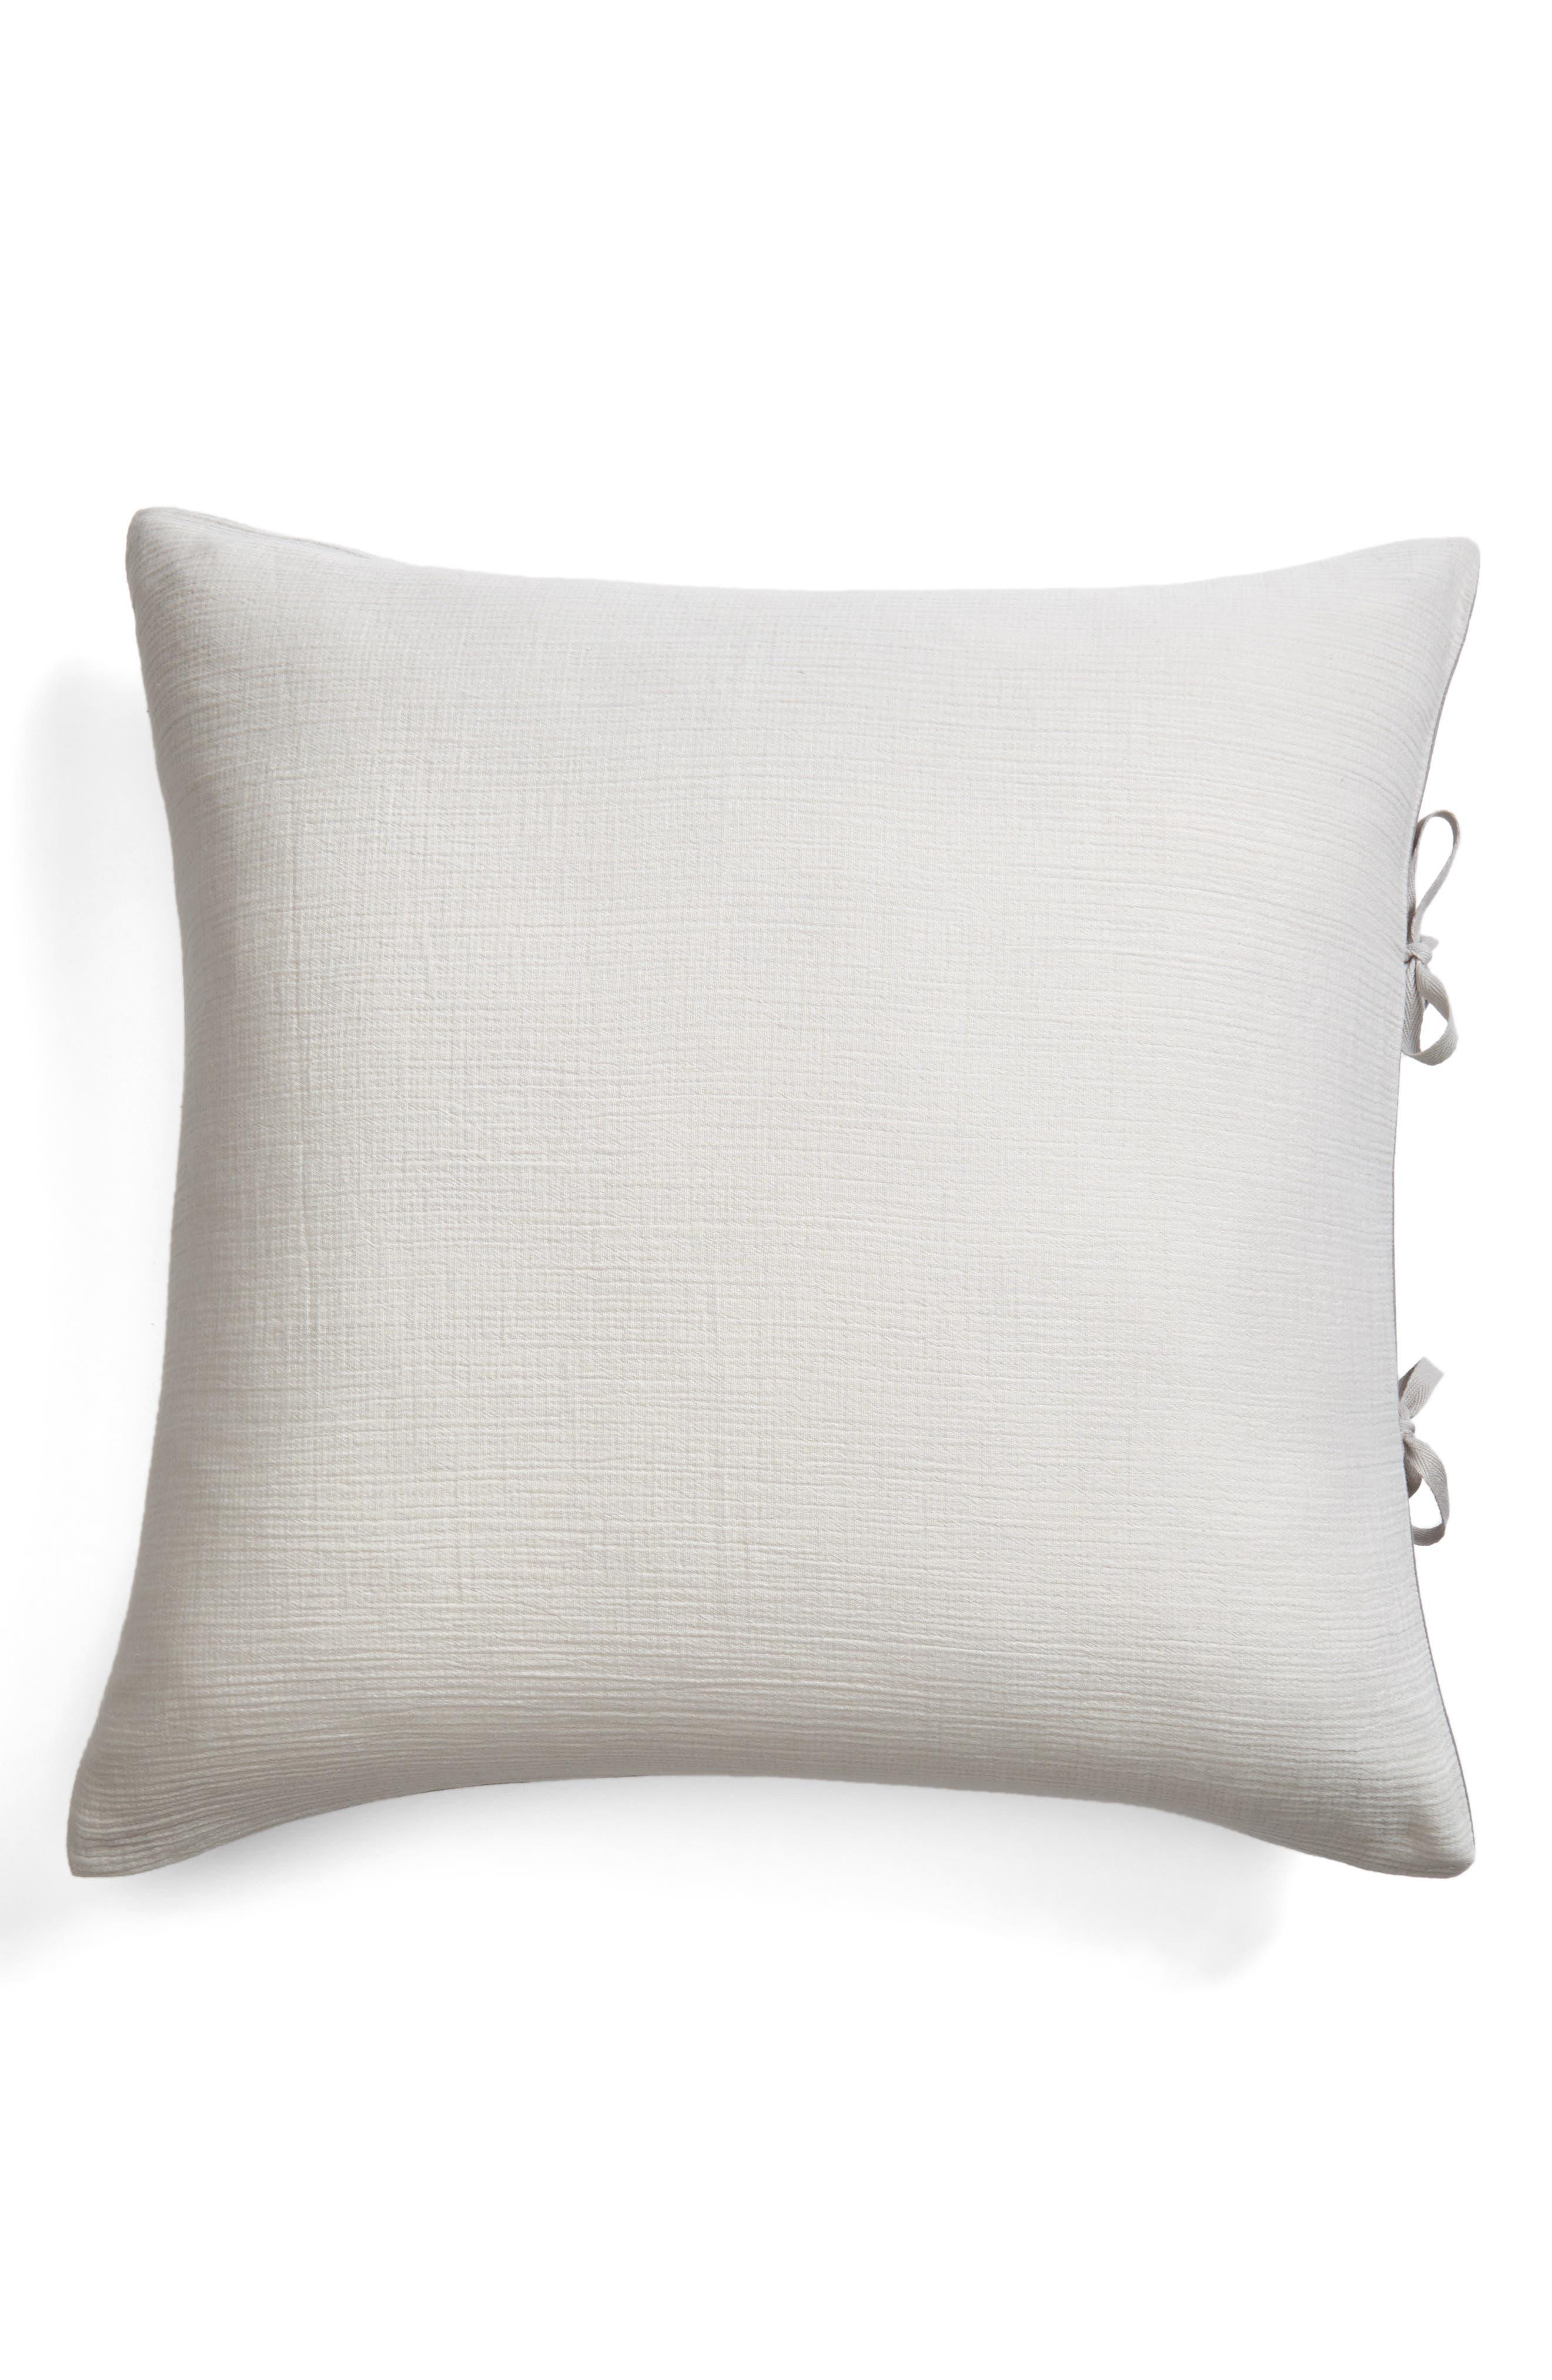 Nordstrom at Home Double Weave Euro Sham